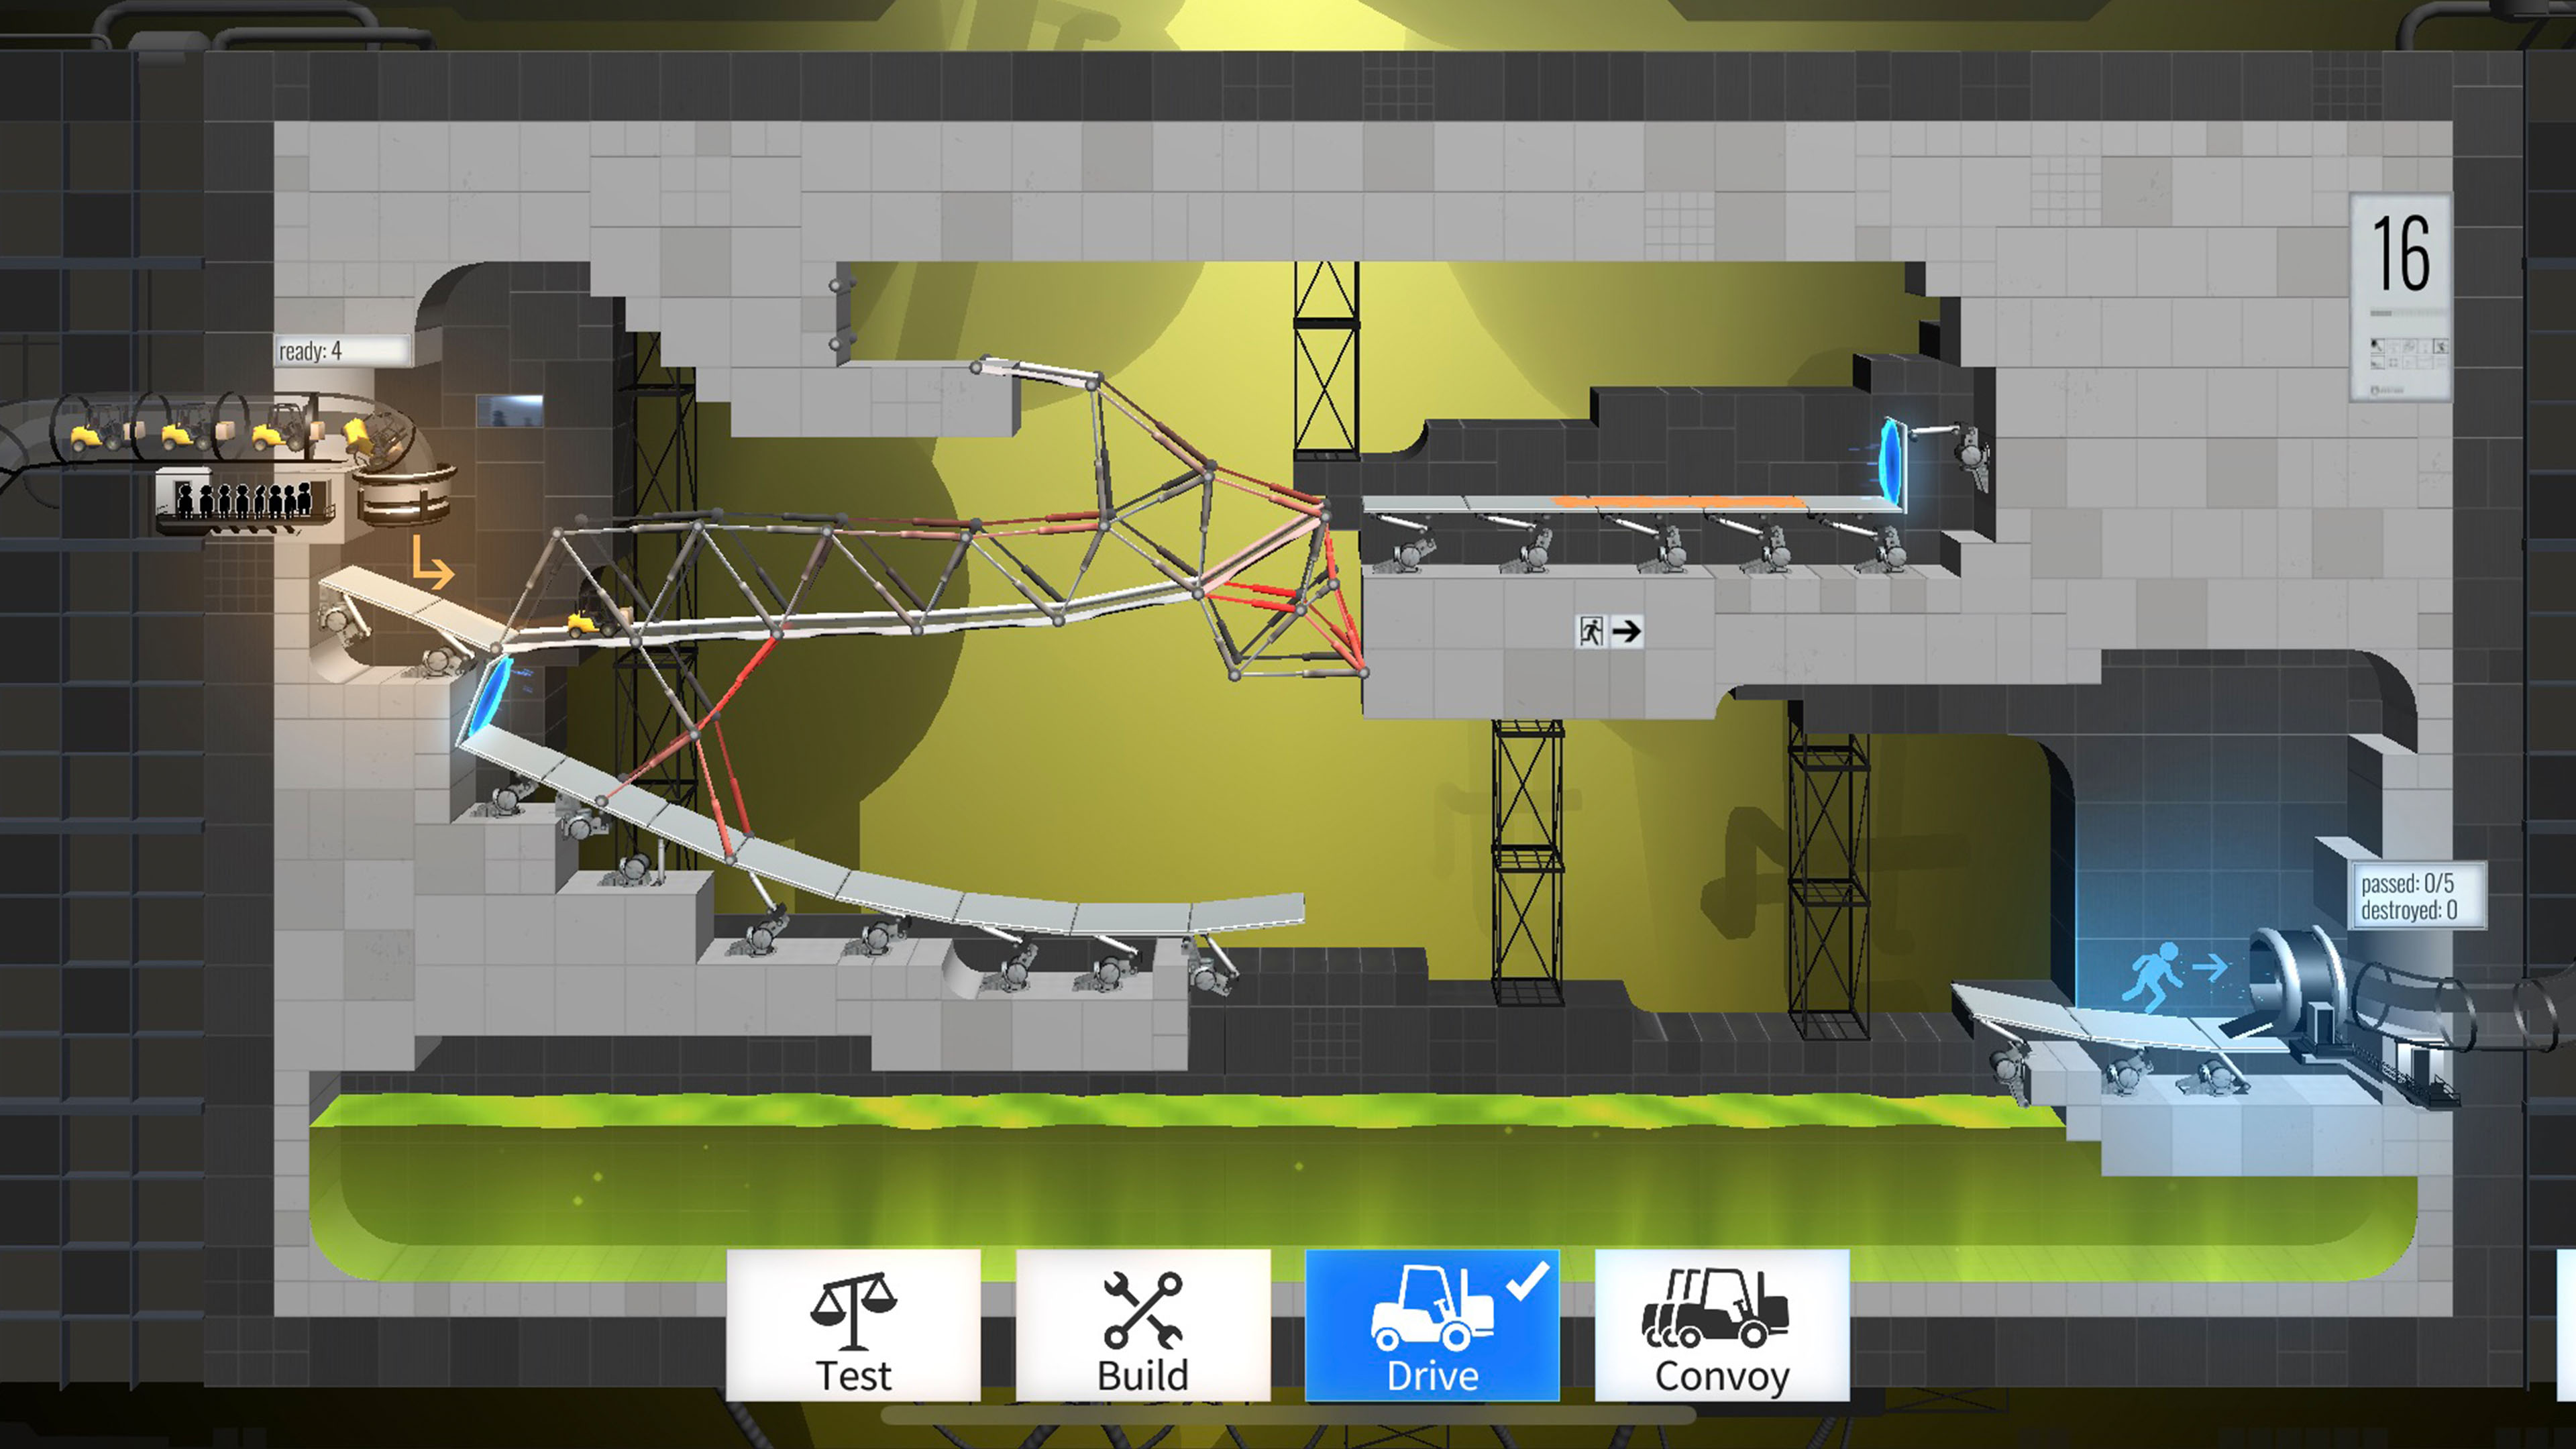 Review: Bridge Constructor Portal brings the fun of Valve's hit game to iOS in a clever way